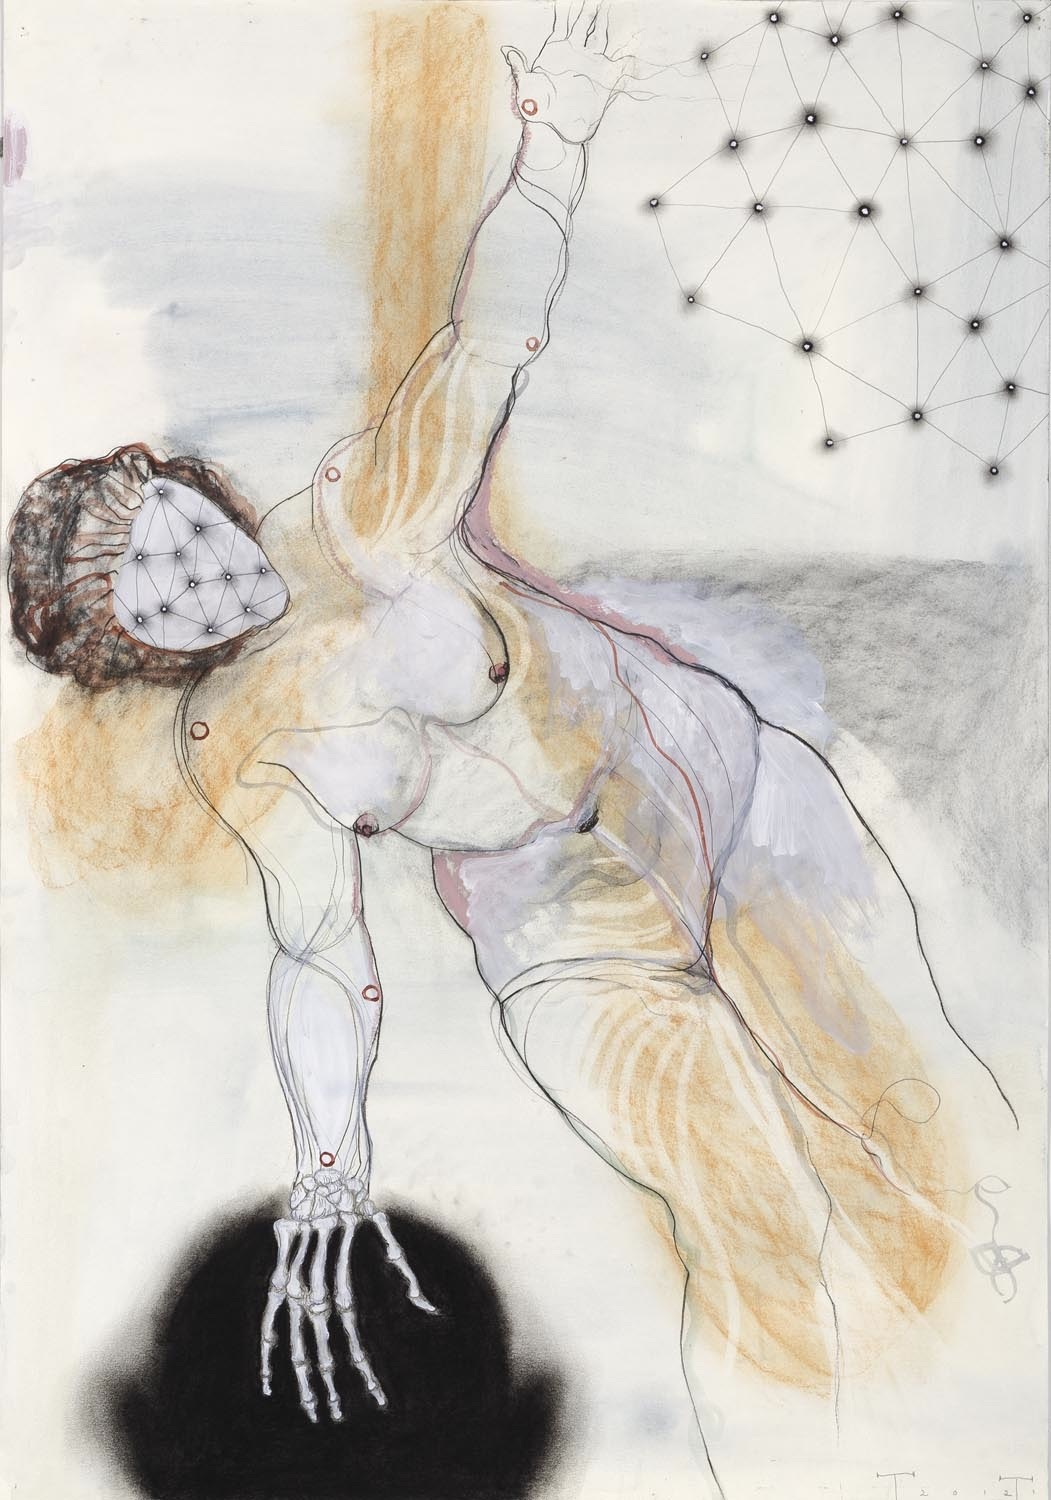 Death and the Maiden, mixed media on paper, 100 X 70 cm, 2012 (collection Joost Hesseling & Madeleine Klis)